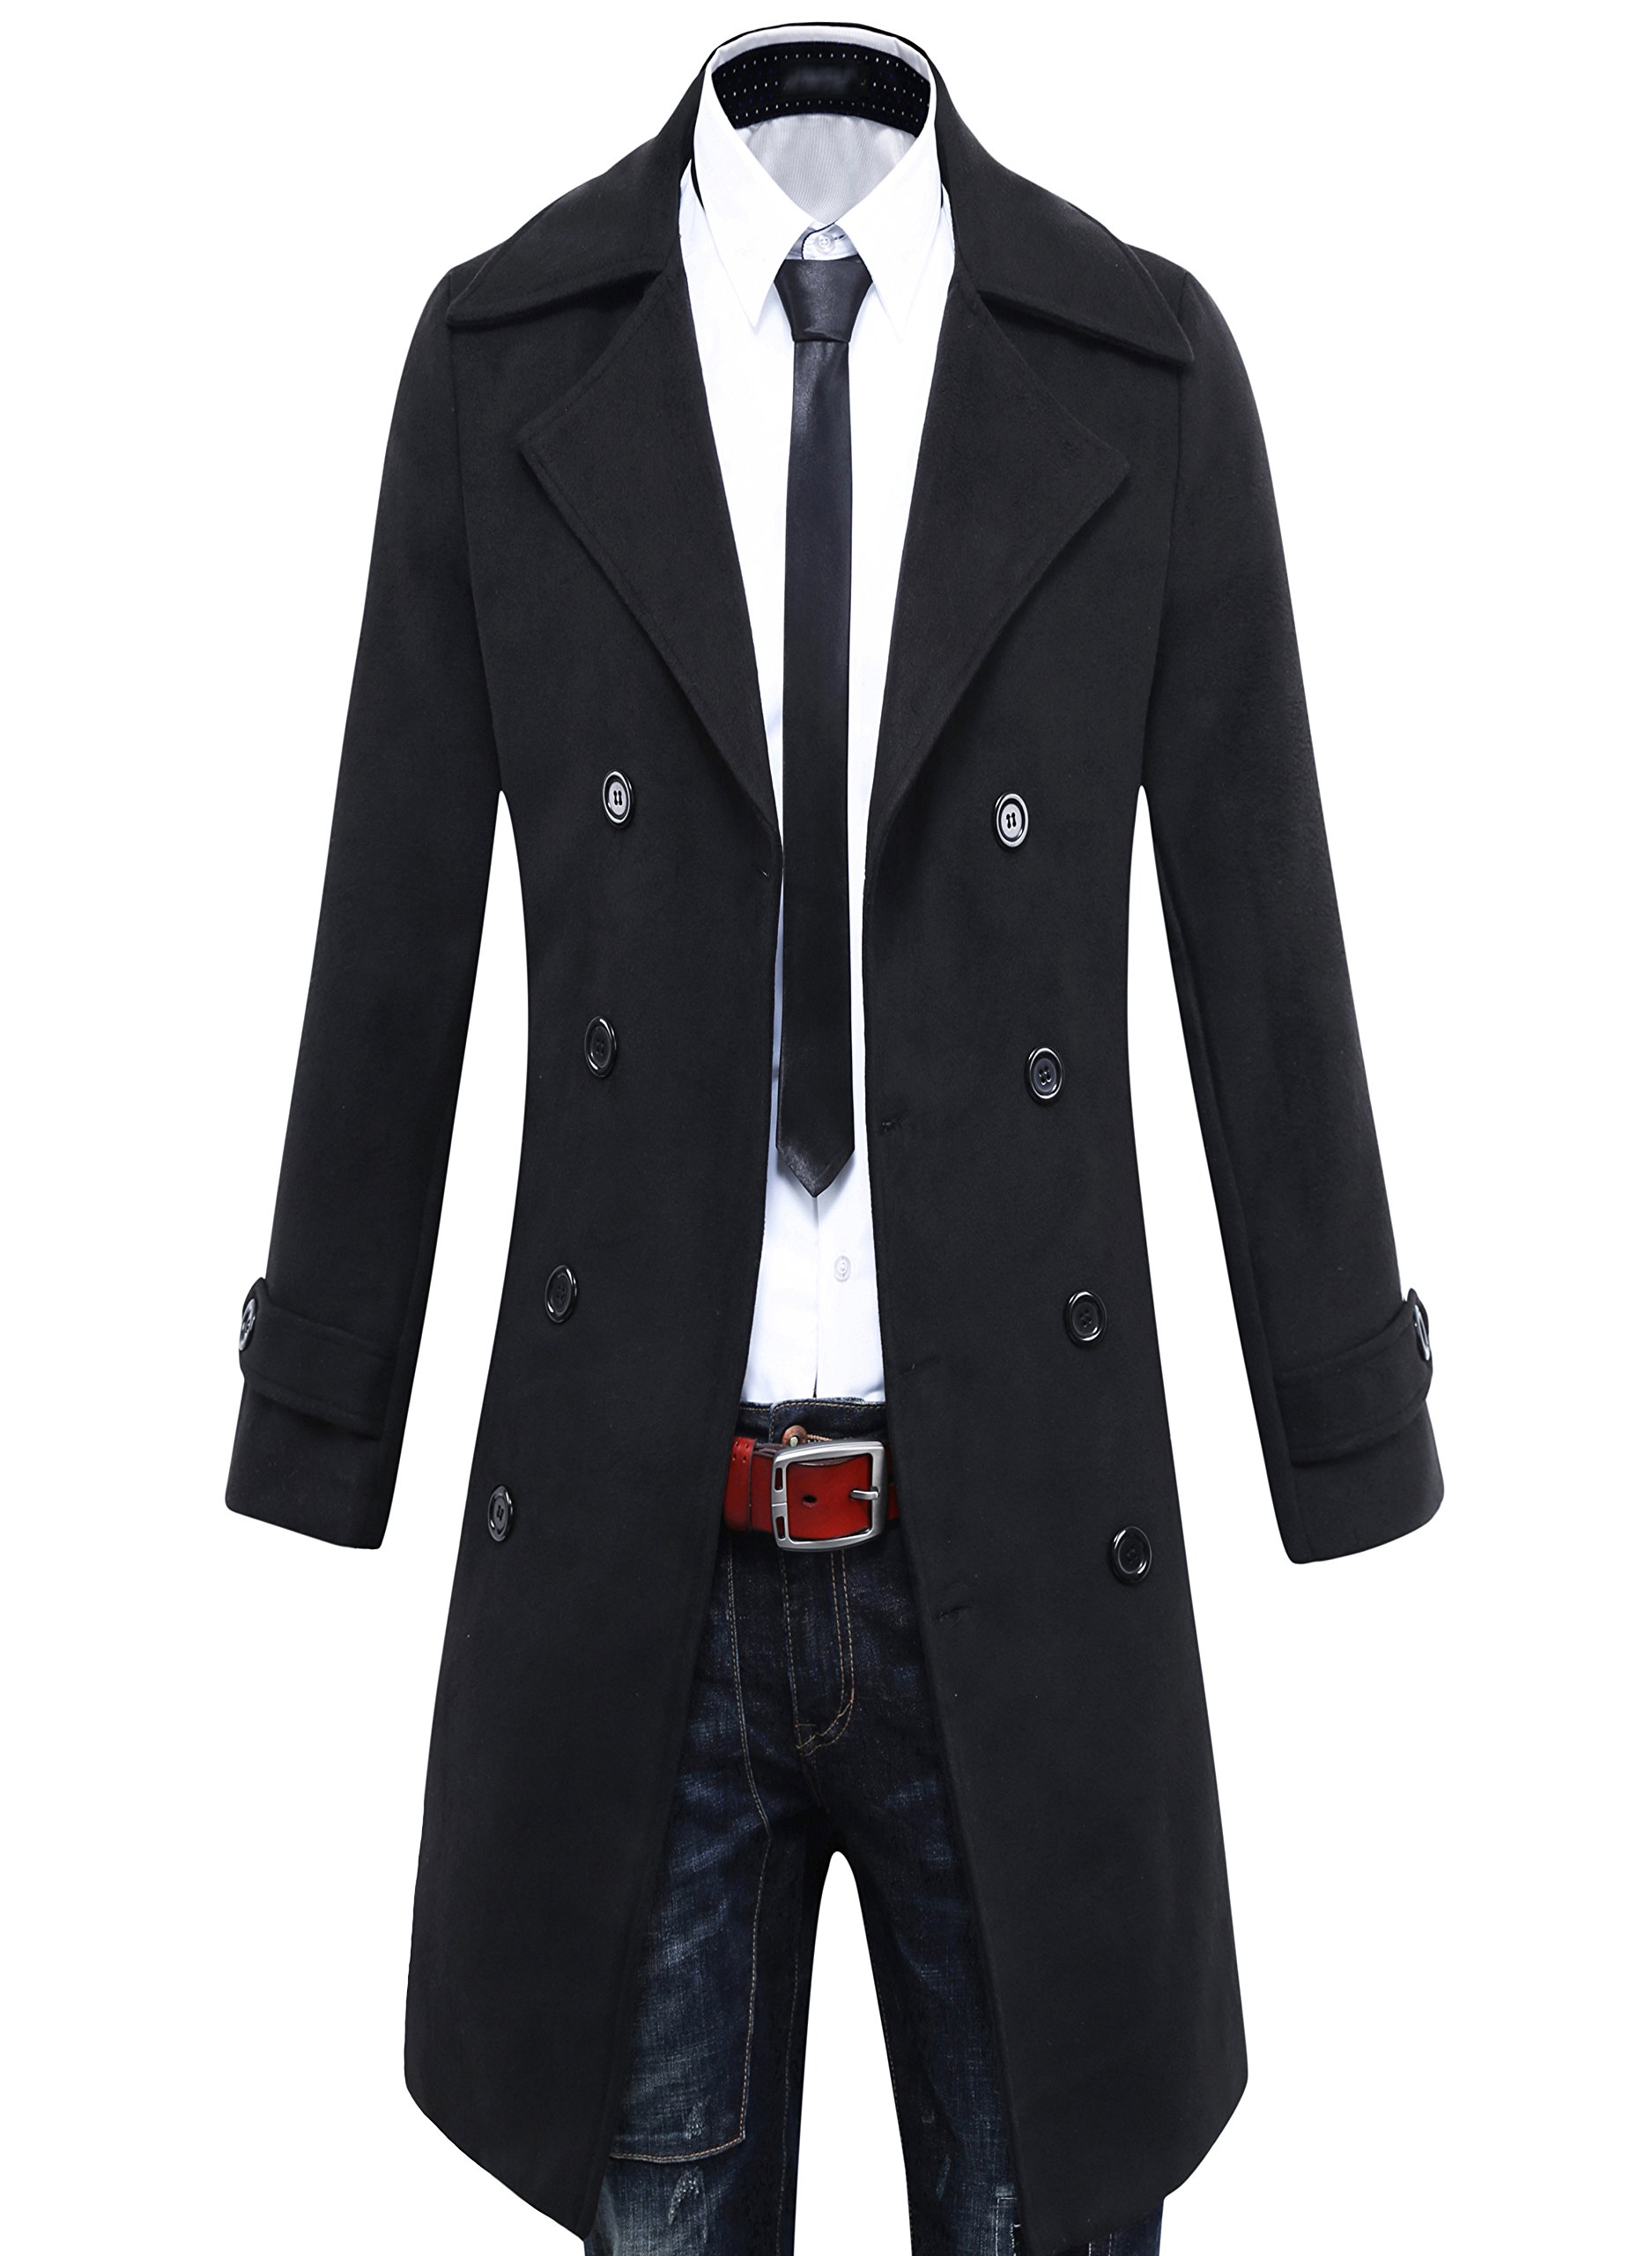 Benibos Men's Trench Coat Winter Long Jacket Double Breasted Overcoat (US:L/Asia 2XL, 5625Black)